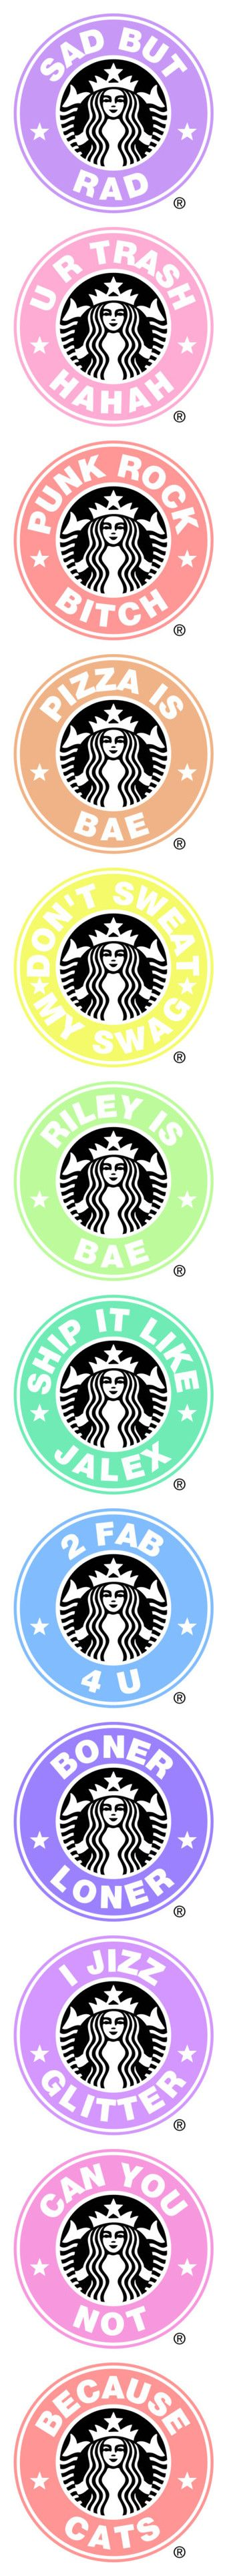 """Fab starbucks logos - Made by Me"" by in-this-darkness-i-see-colors ❤ liked on Polyvore featuring Hipster, tumblr, starbucks, sassy, pastel, filler, text, - fillers, logo and phrase"